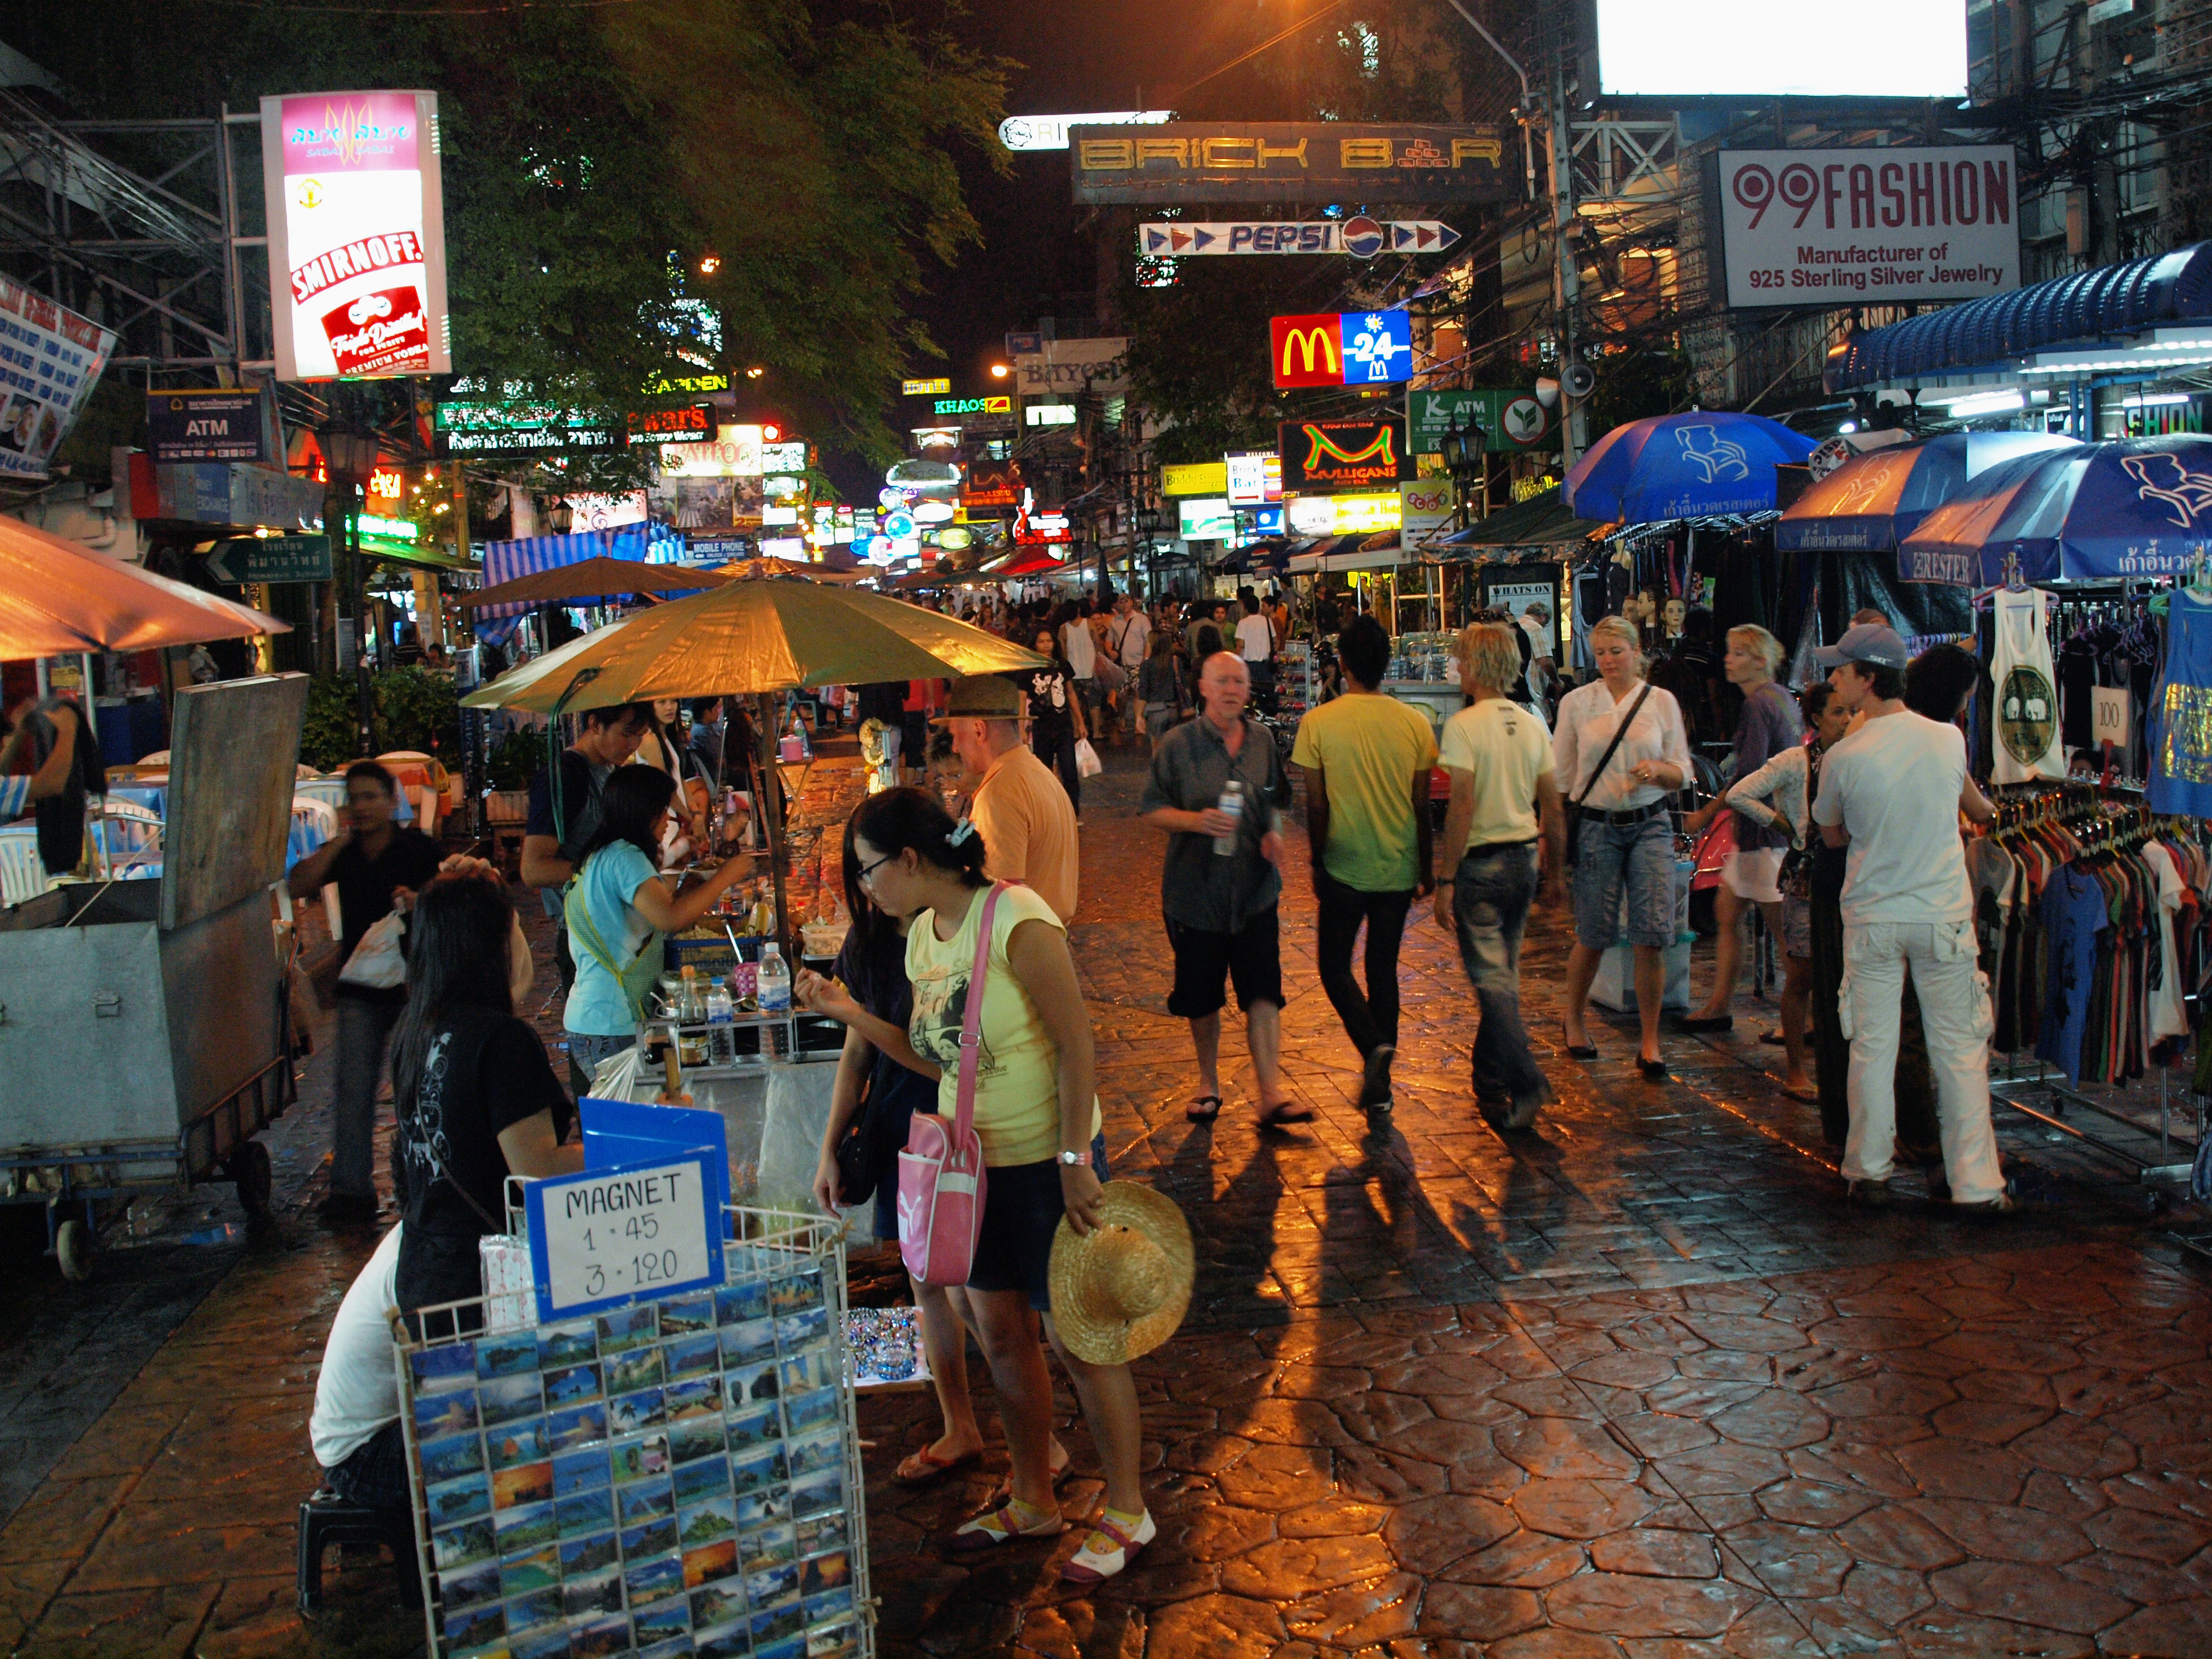 Night scene on a pedestrian street, with many people and ...